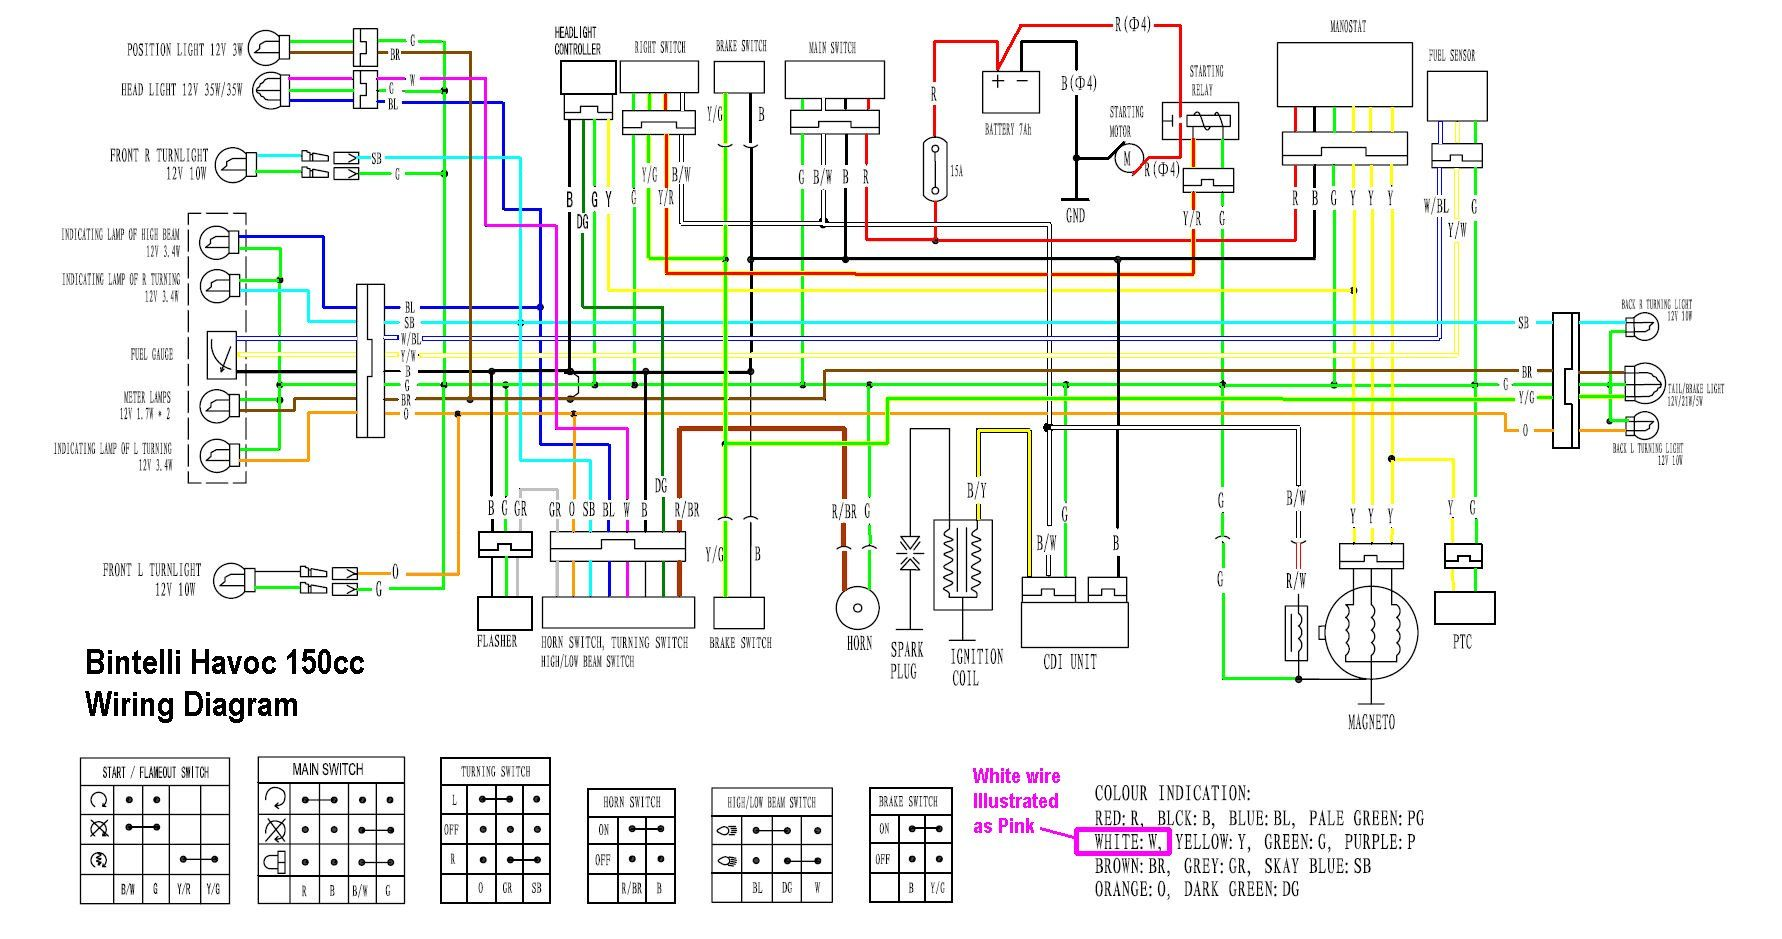 Kinetic Honda Wiring Diagram Http Bookingritzcarlton Info Kinetic Honda Wiring Diagram Chinese Scooters 150cc Electrical Diagram